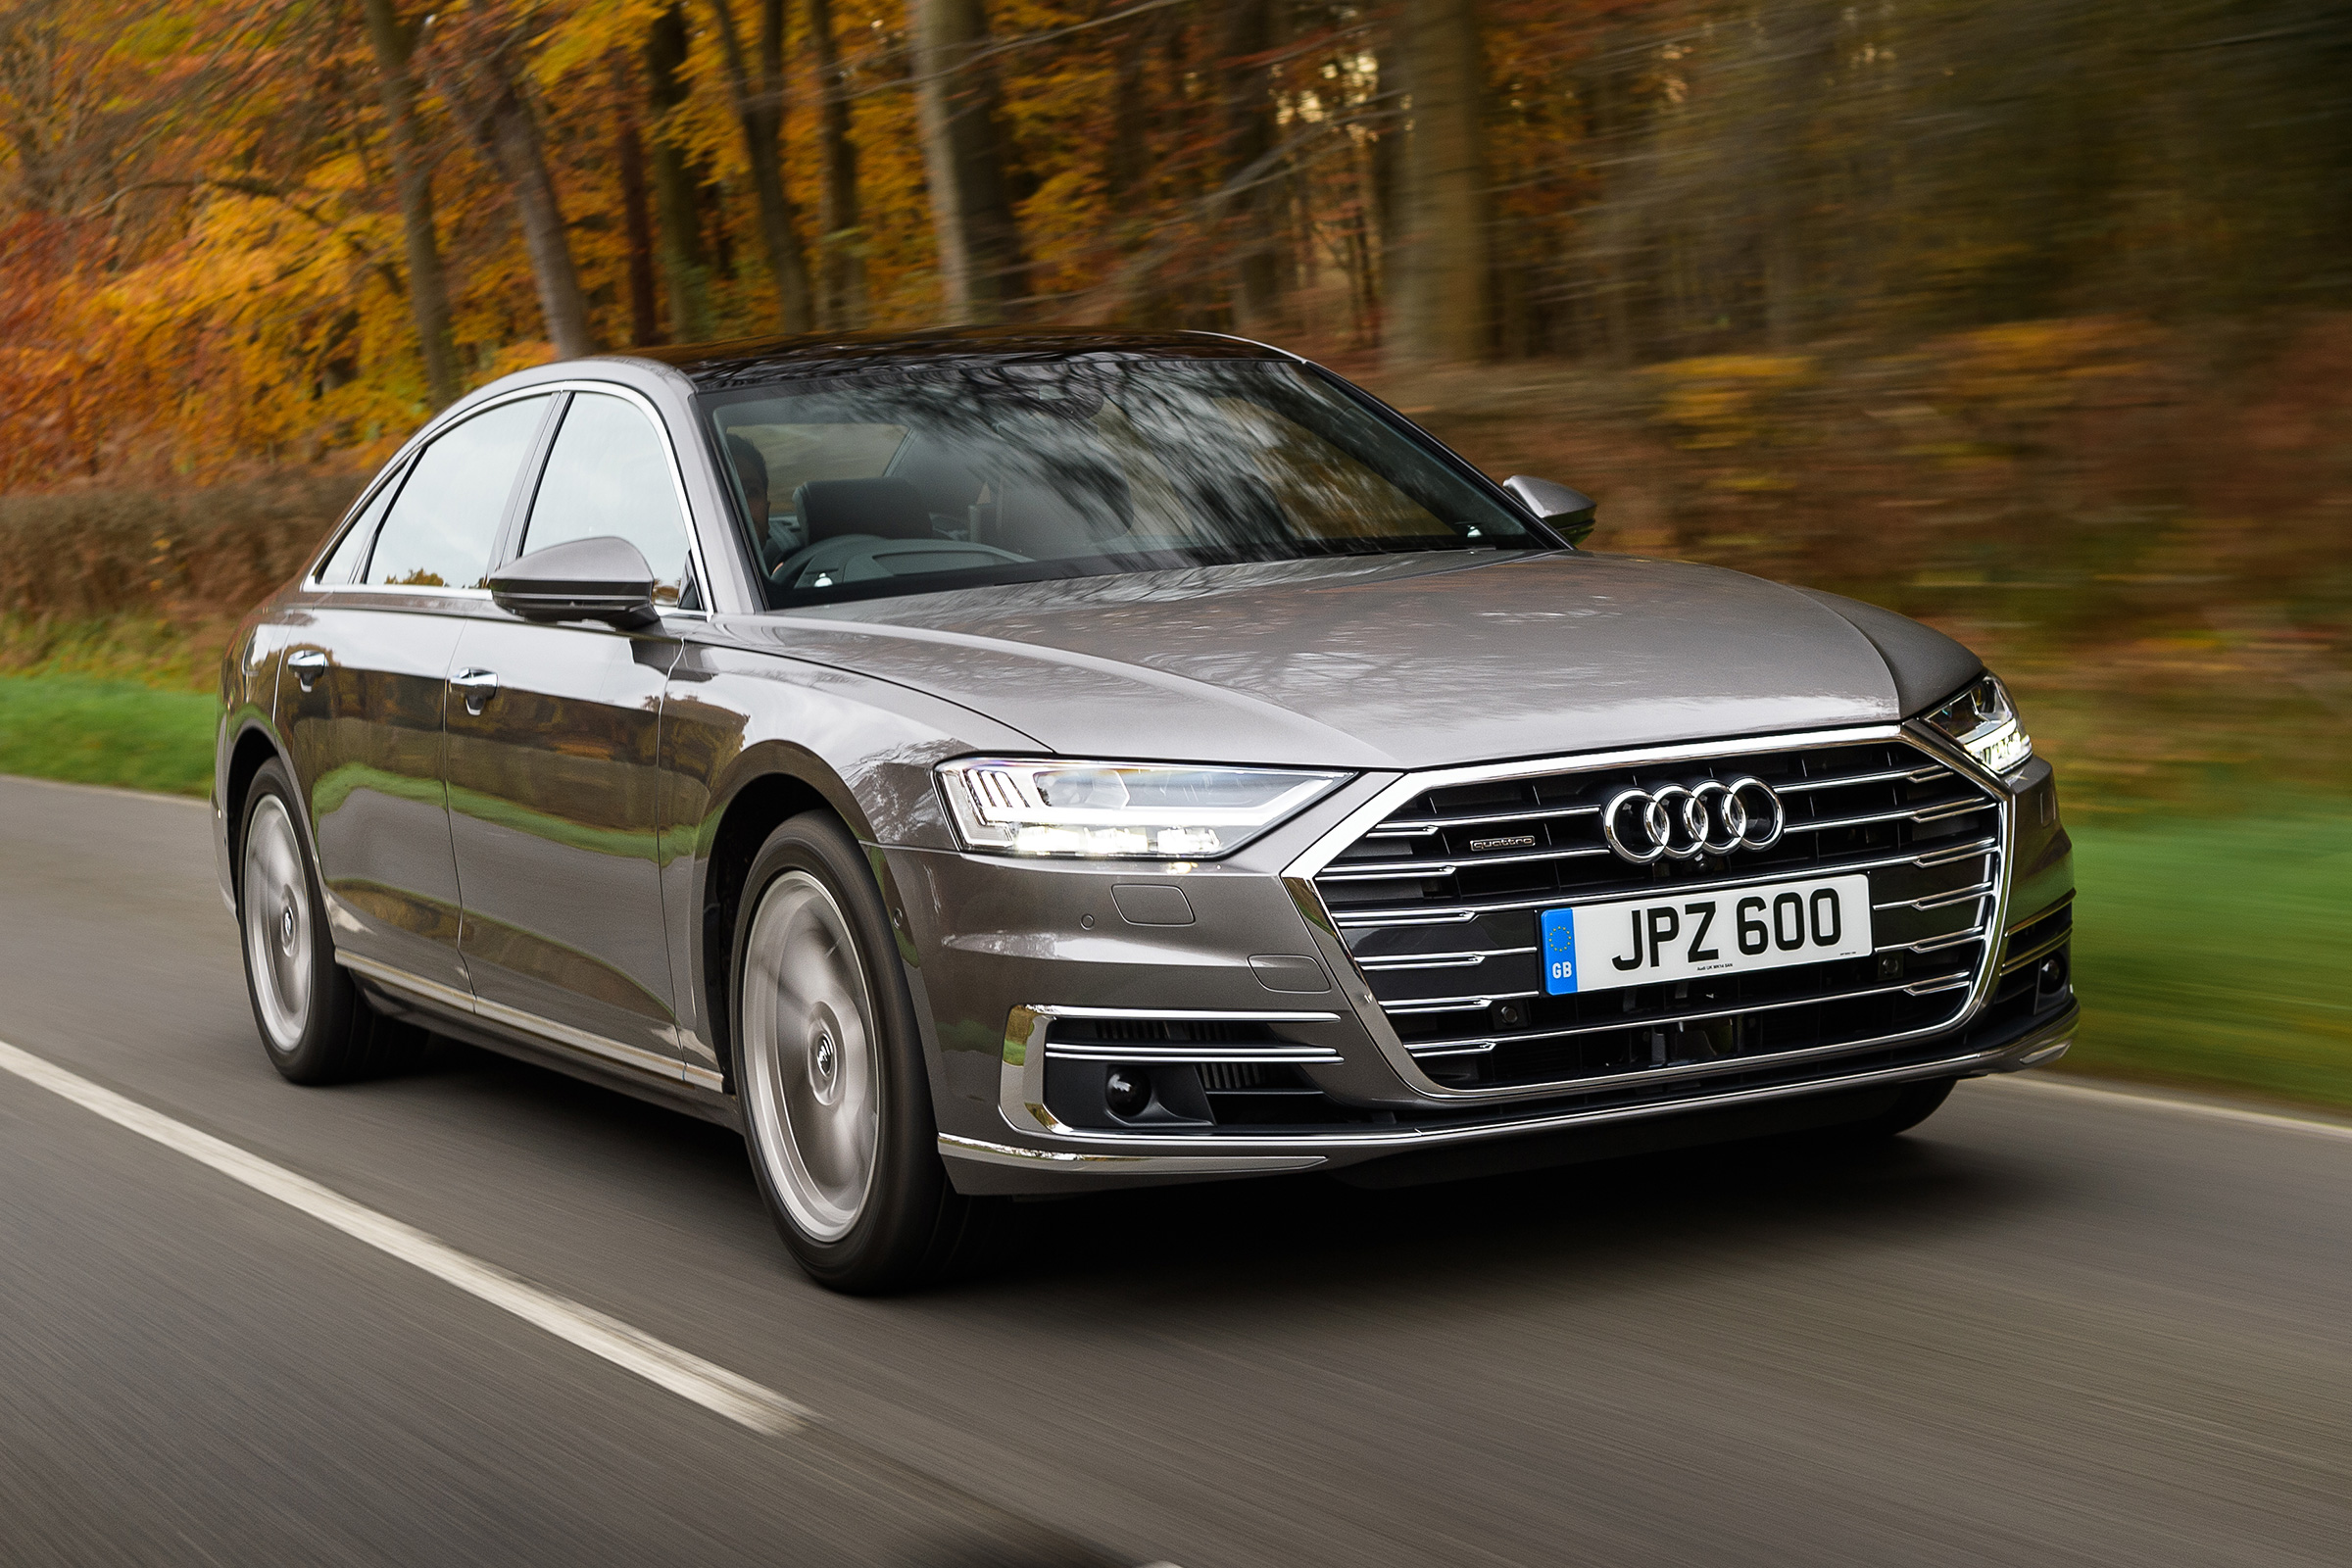 New Audi A8 2017 UK review | Auto Express